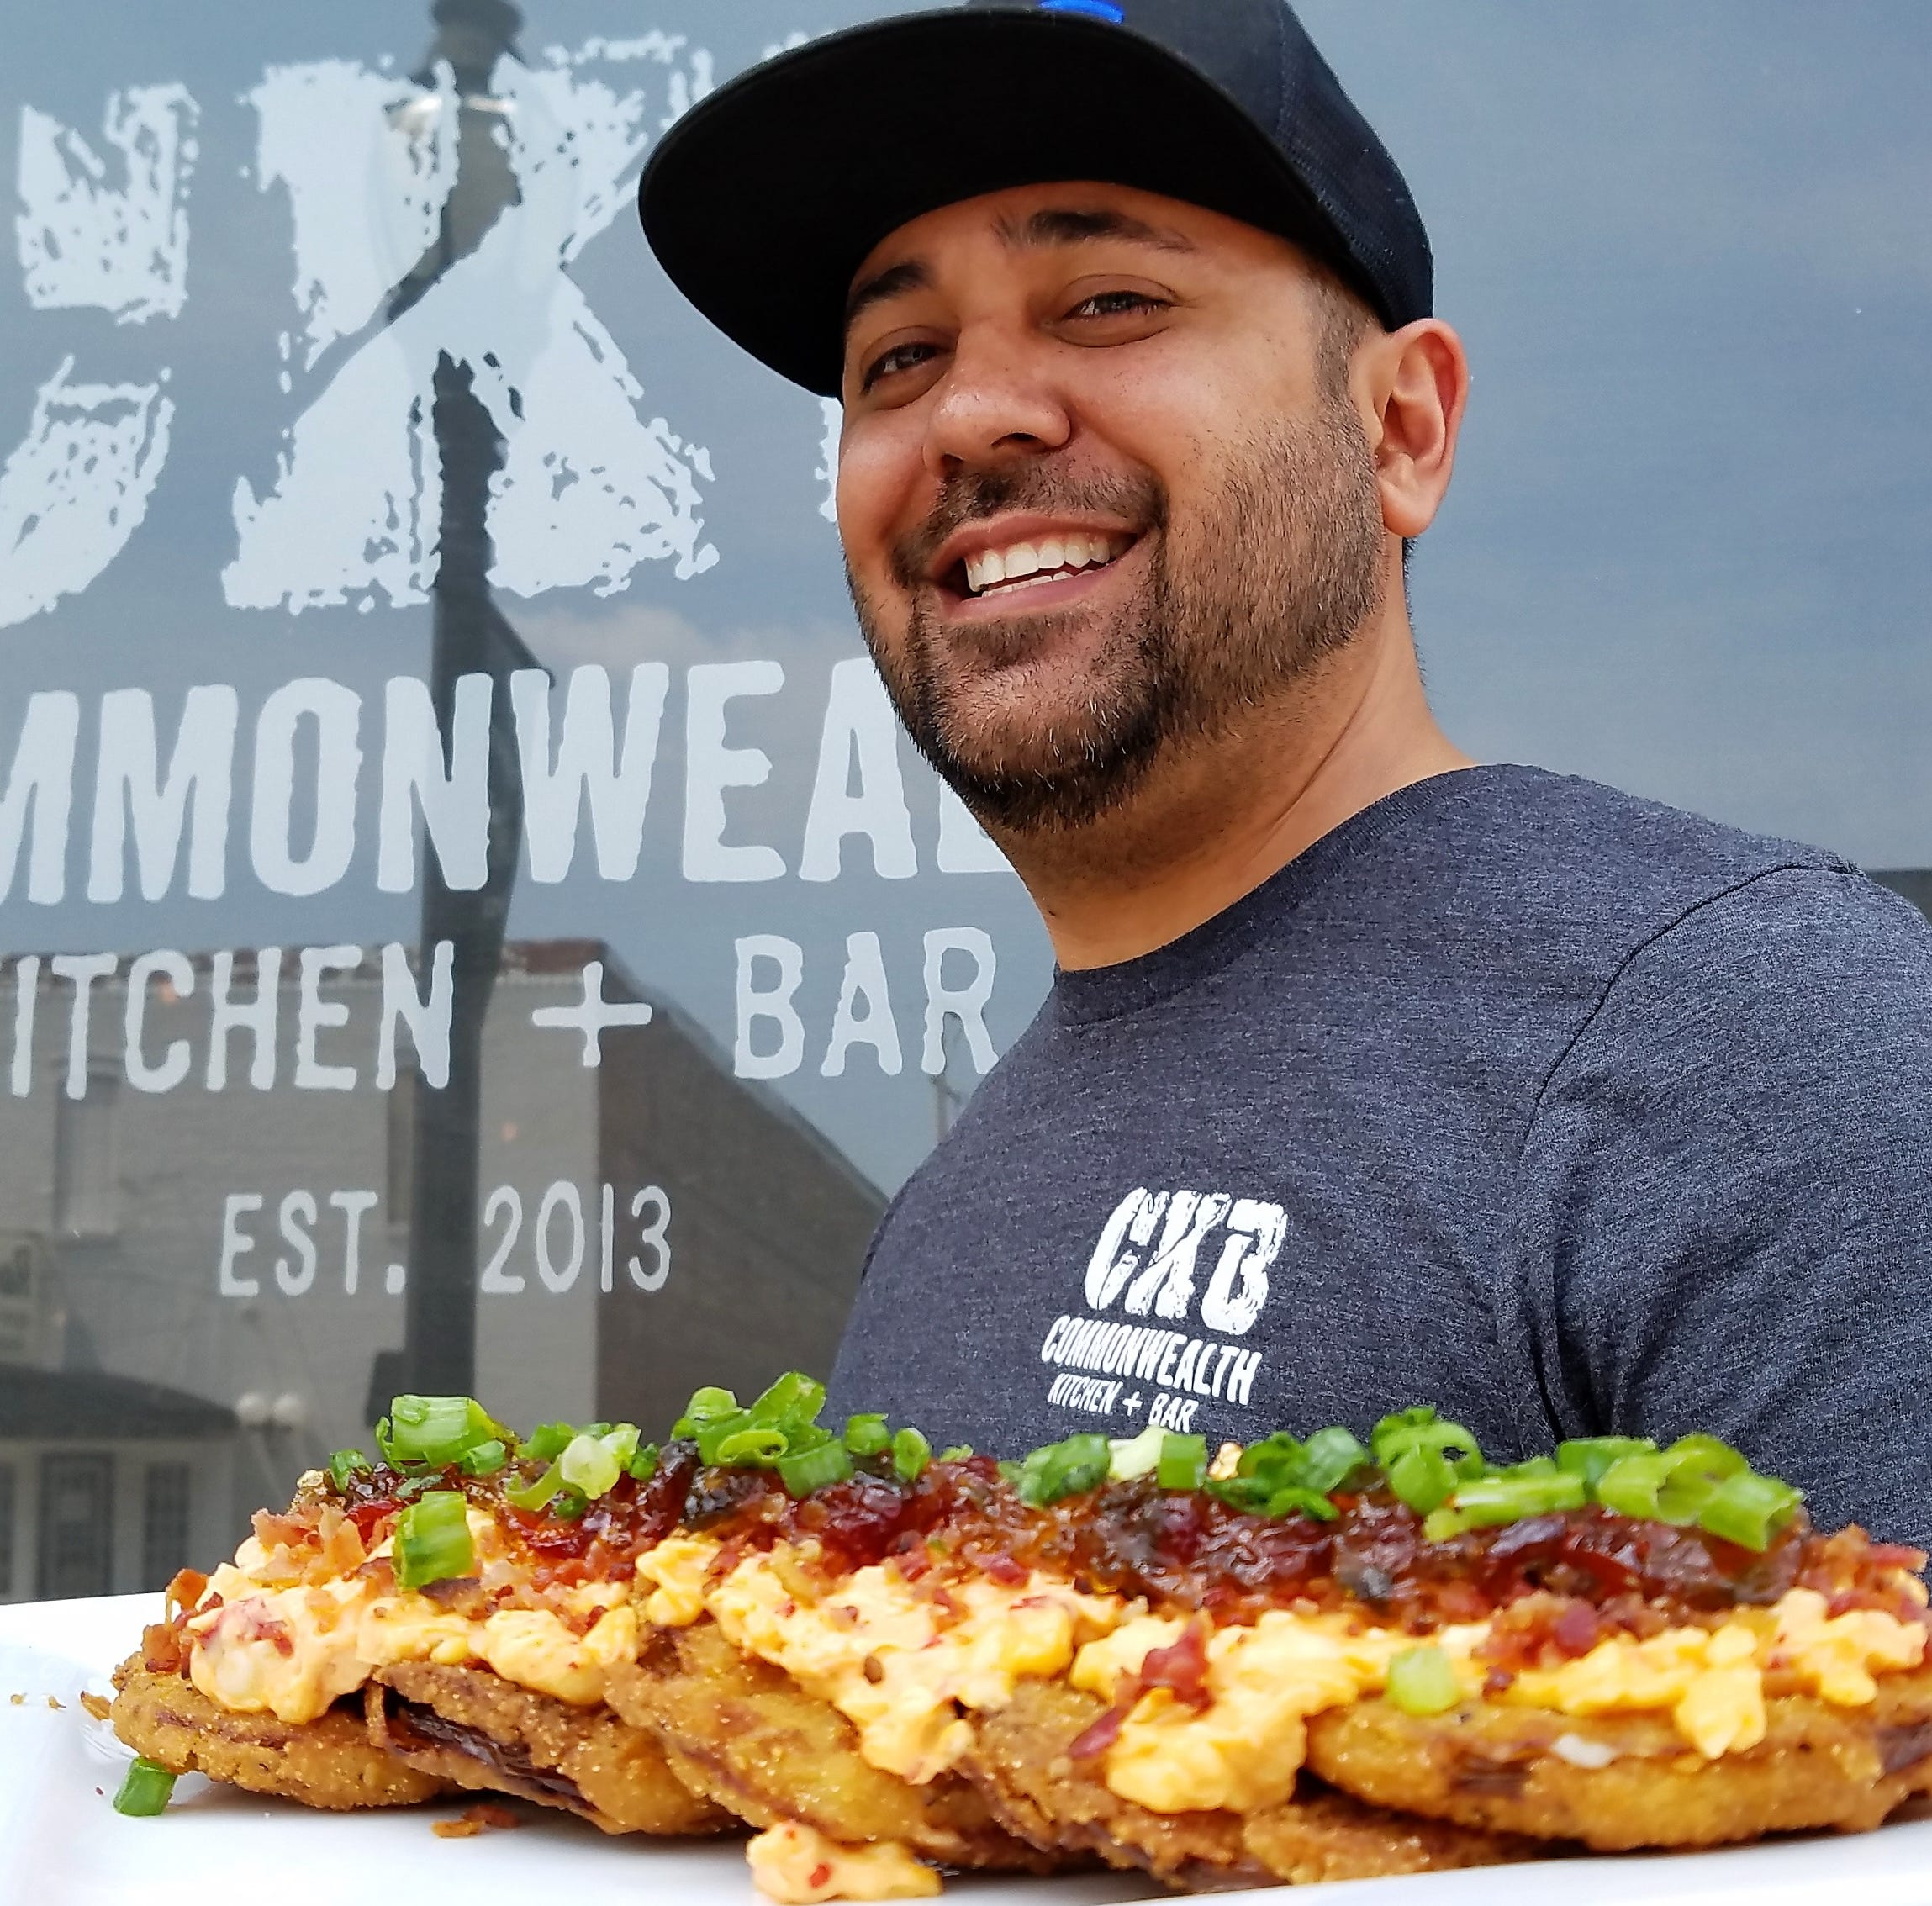 Henderson's Commonwealth Kitchen and Bar debuts new, streamlined fall menu